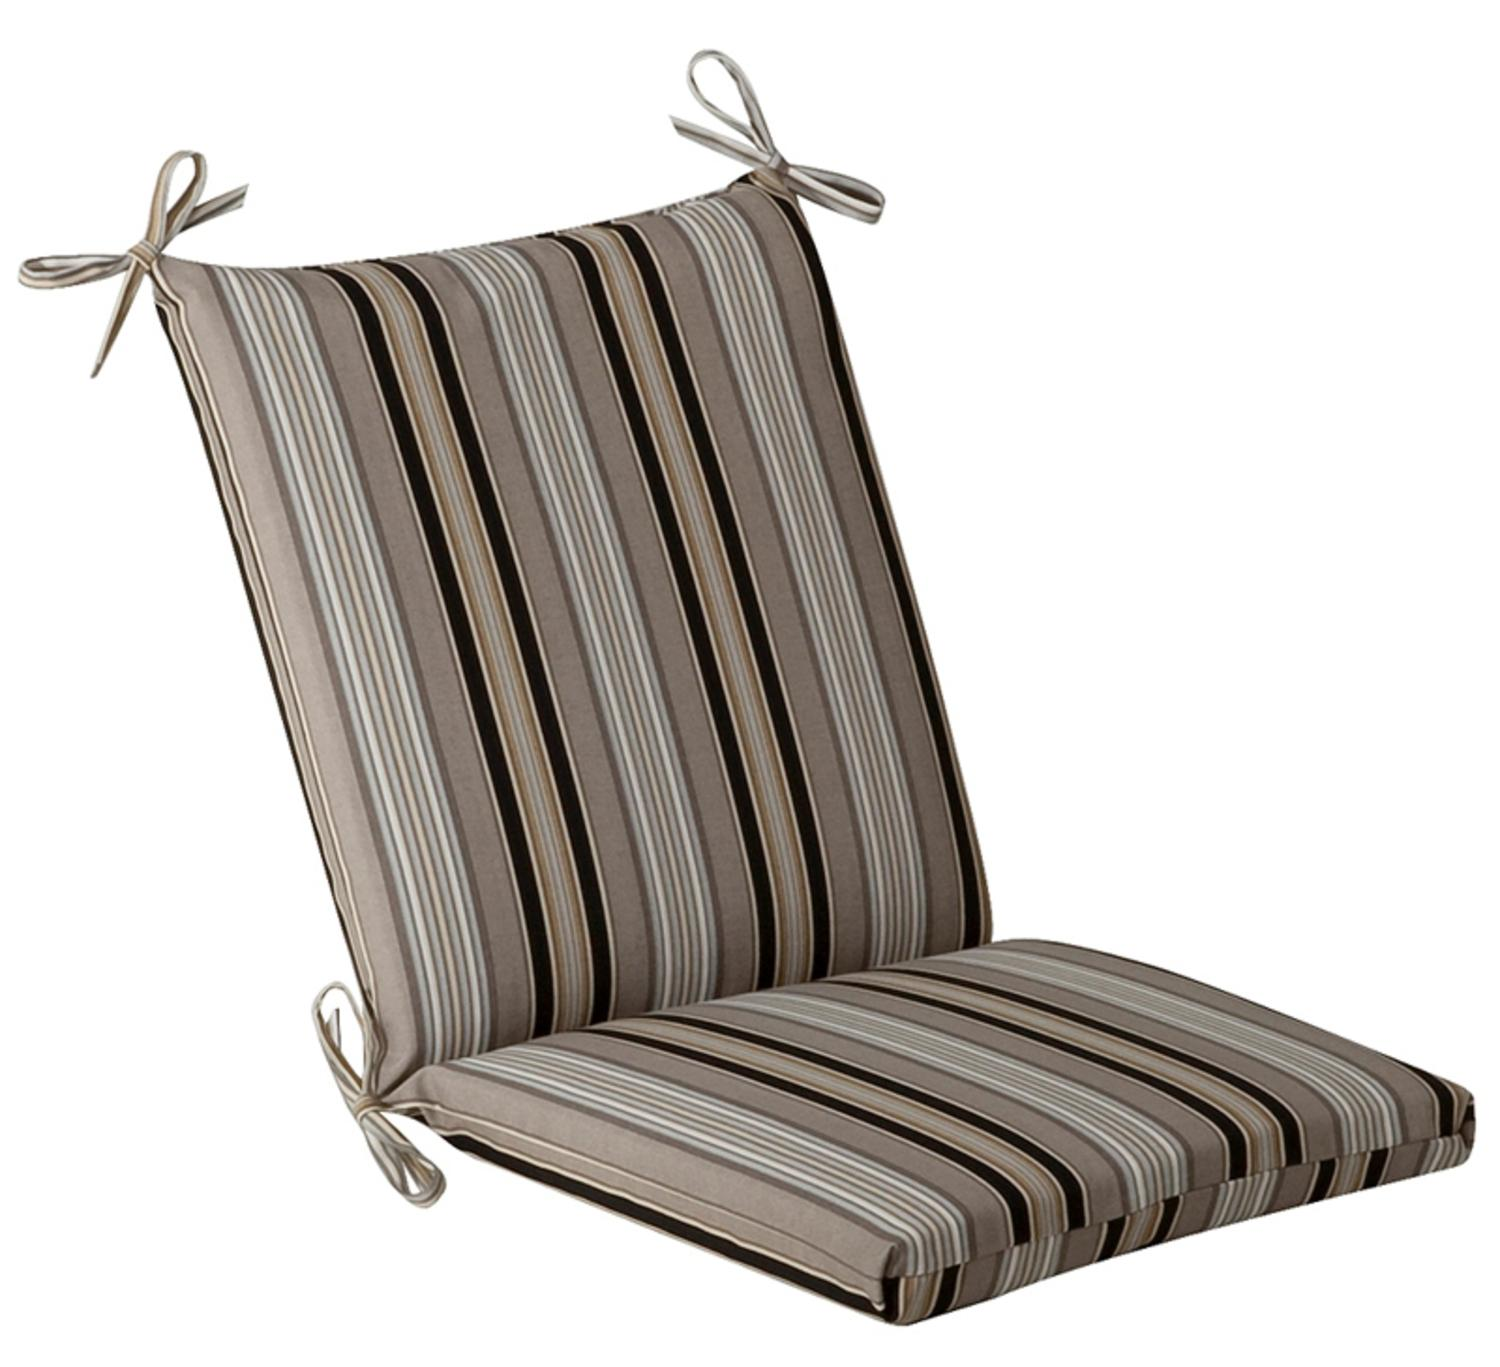 Outdoor Patio Furniture Mid Back Chair Cushion - Black & Tan Striped Voyage